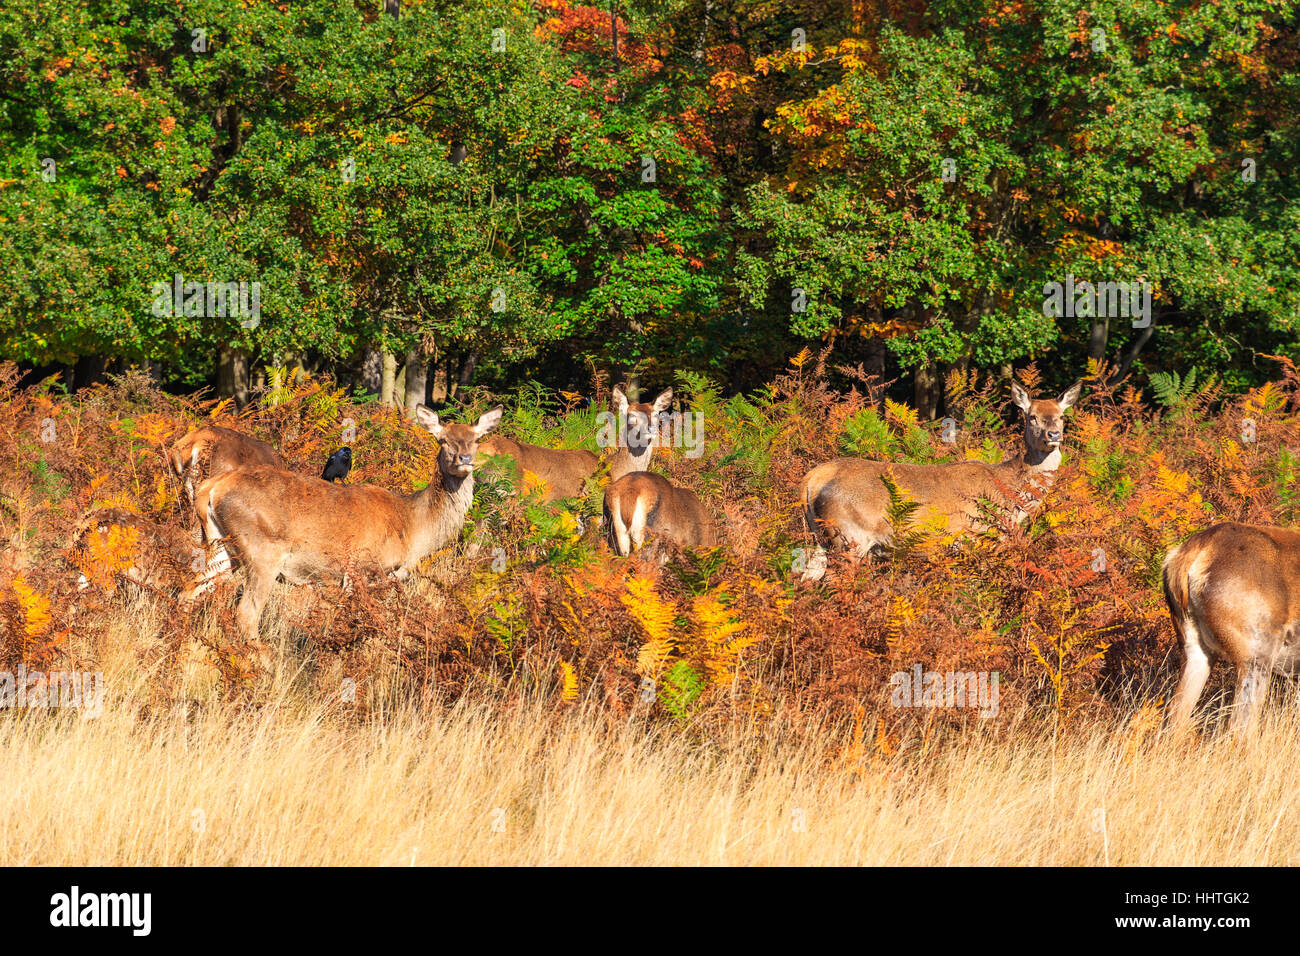 Herd of red deer in Richmond Park, London - Stock Image